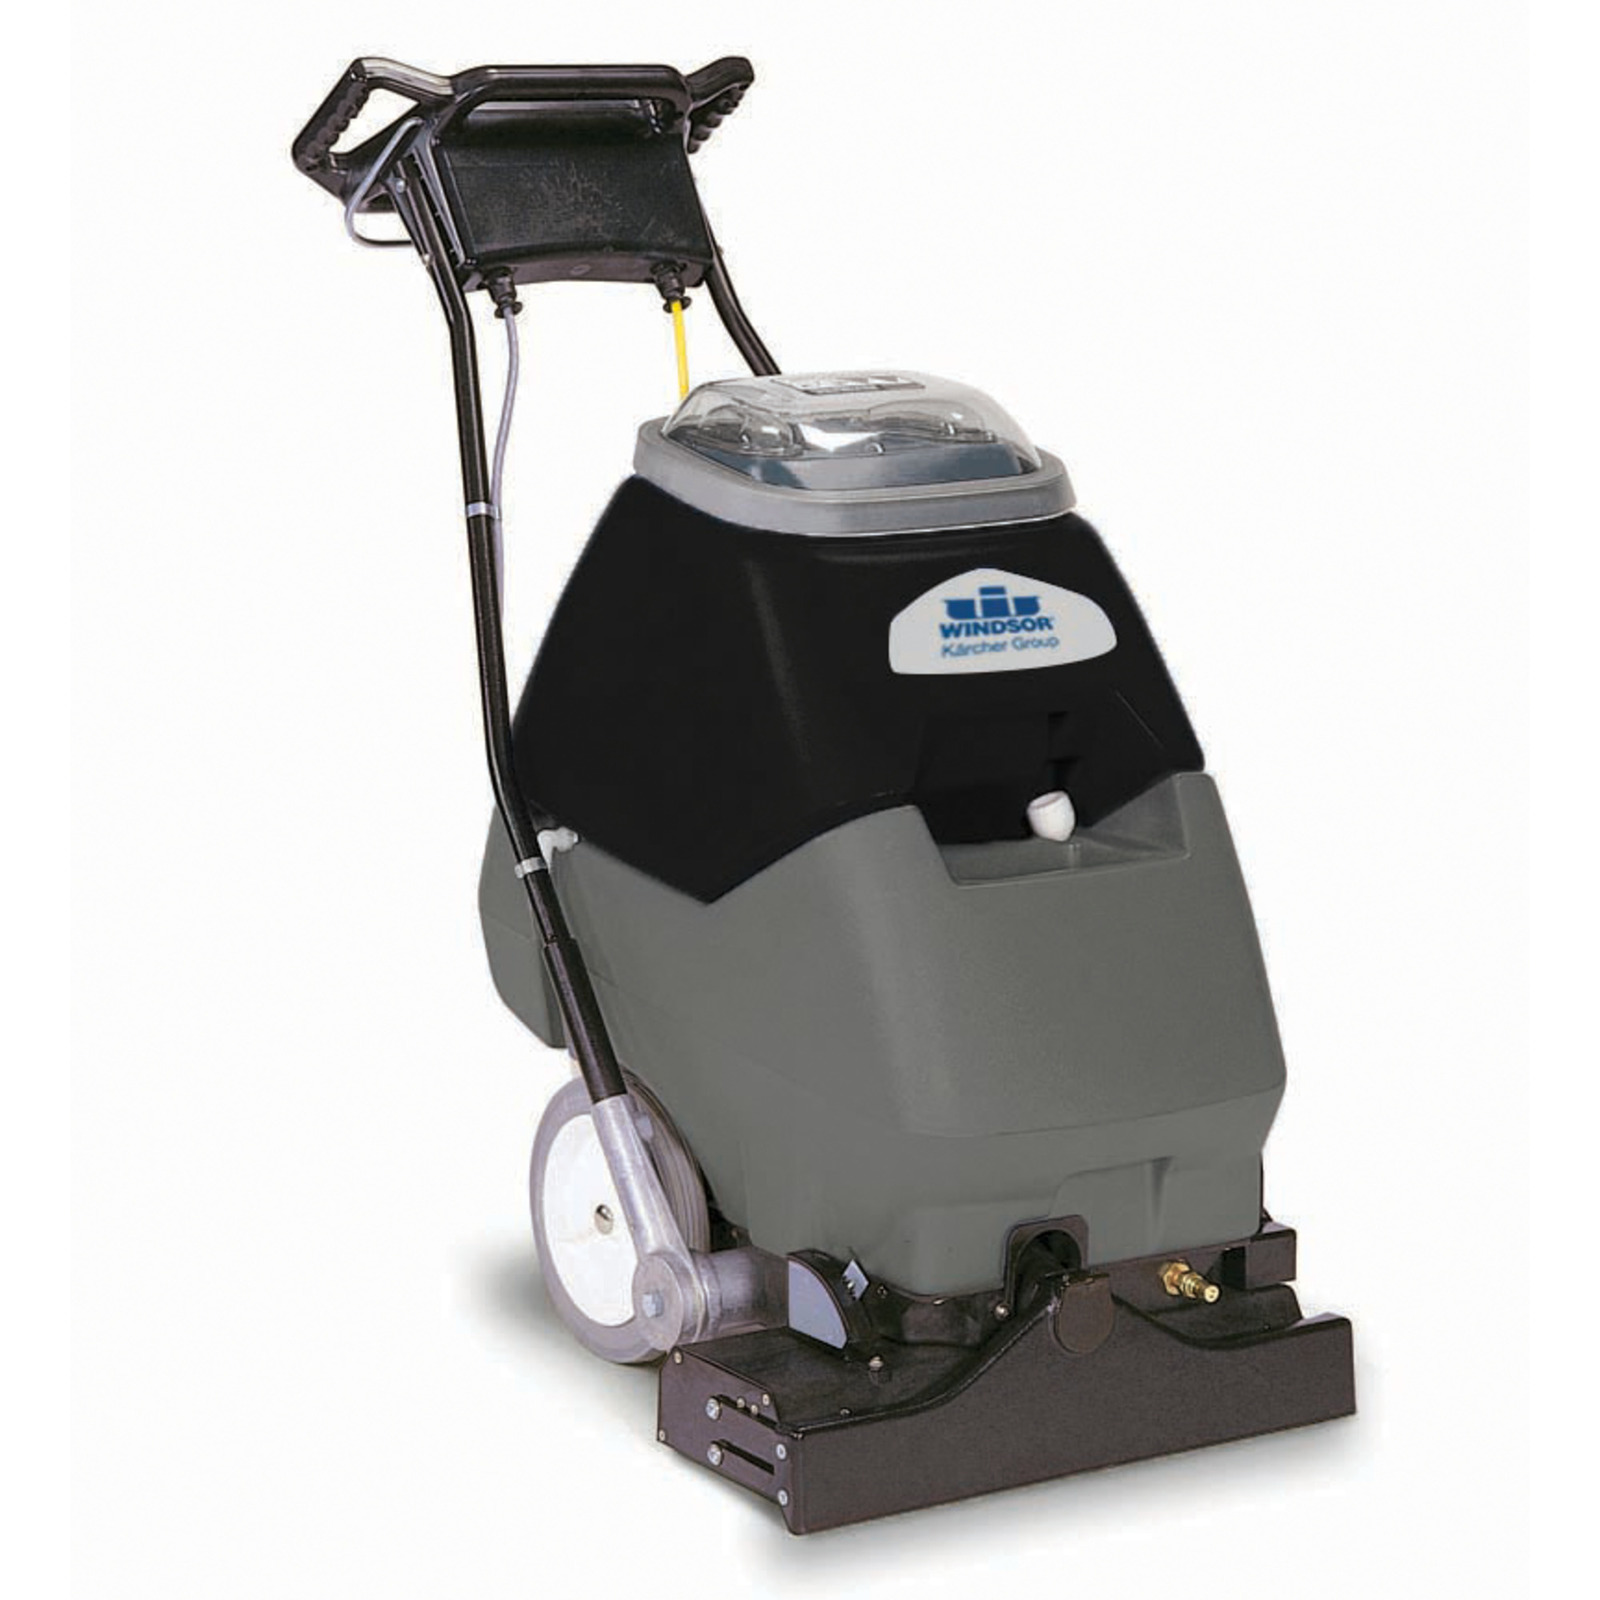 Demo Windsor Clipper 12 gal 18 Inch Bi-Directional Carpet Cleaning Machine 1.008-025.0 D FREIGHT INCLUDED